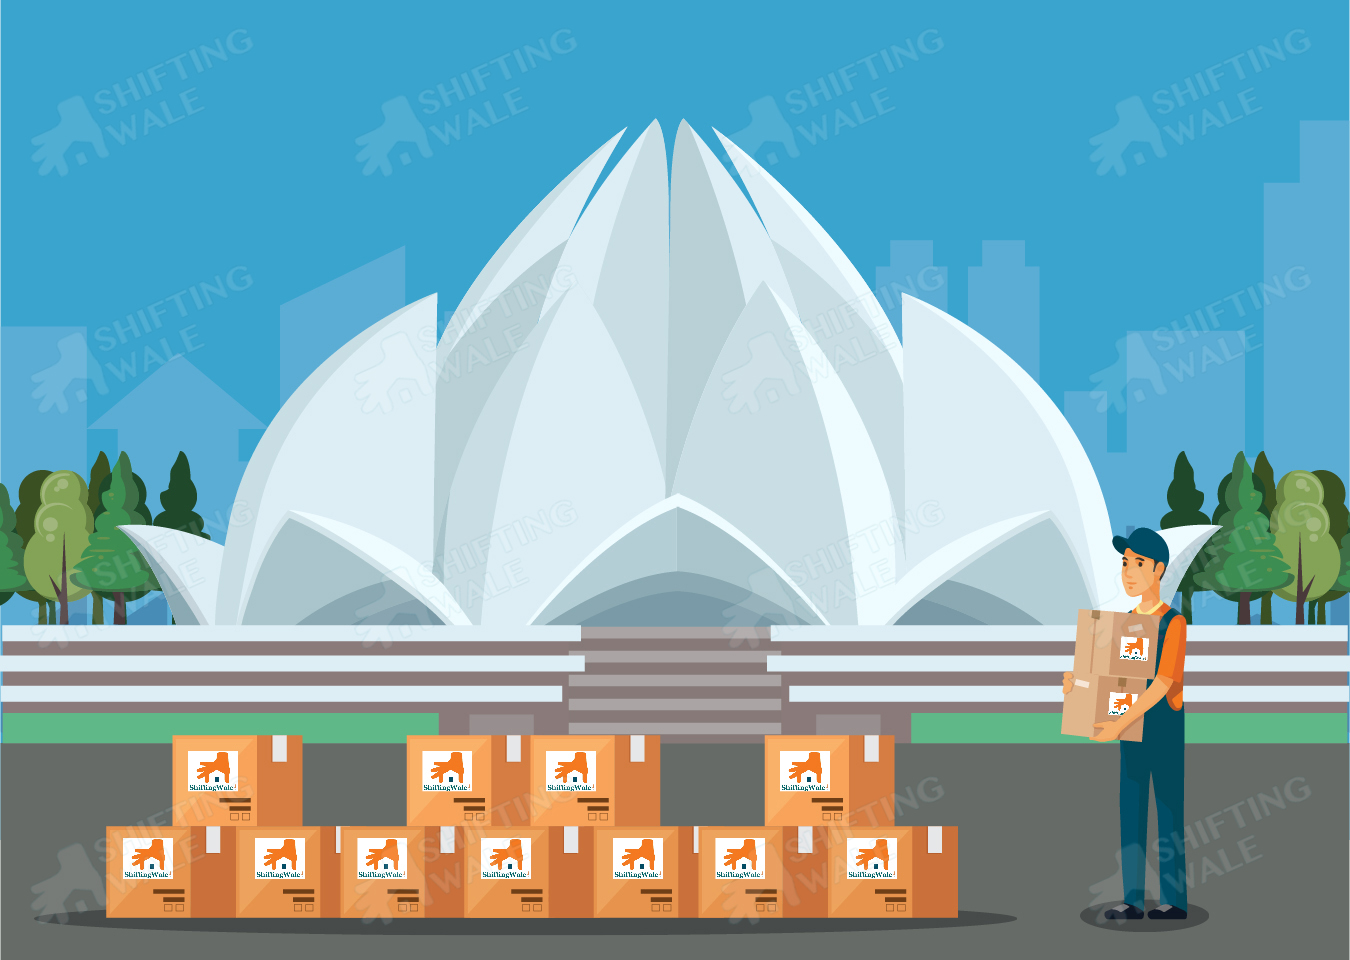 Best Home Shifting Services in Delhi, House Shifting in Delhi